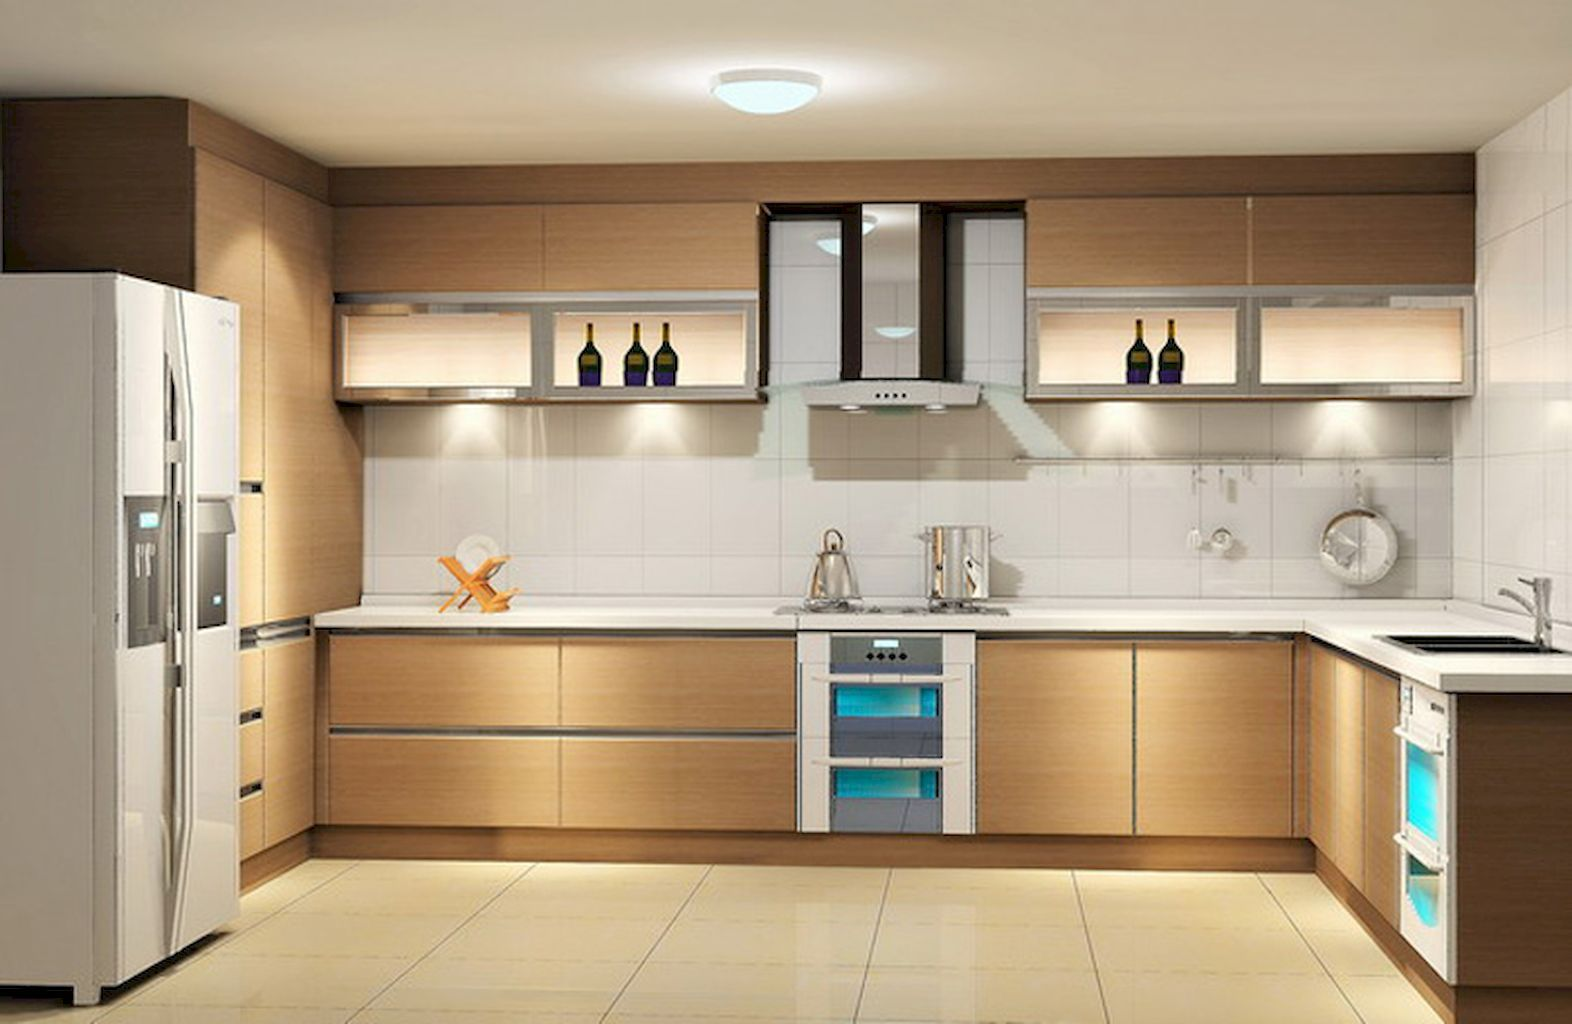 Adorable 120 Beautiful Kitchen Cabinets Design Ideas And Remodel Https Worldecor Co